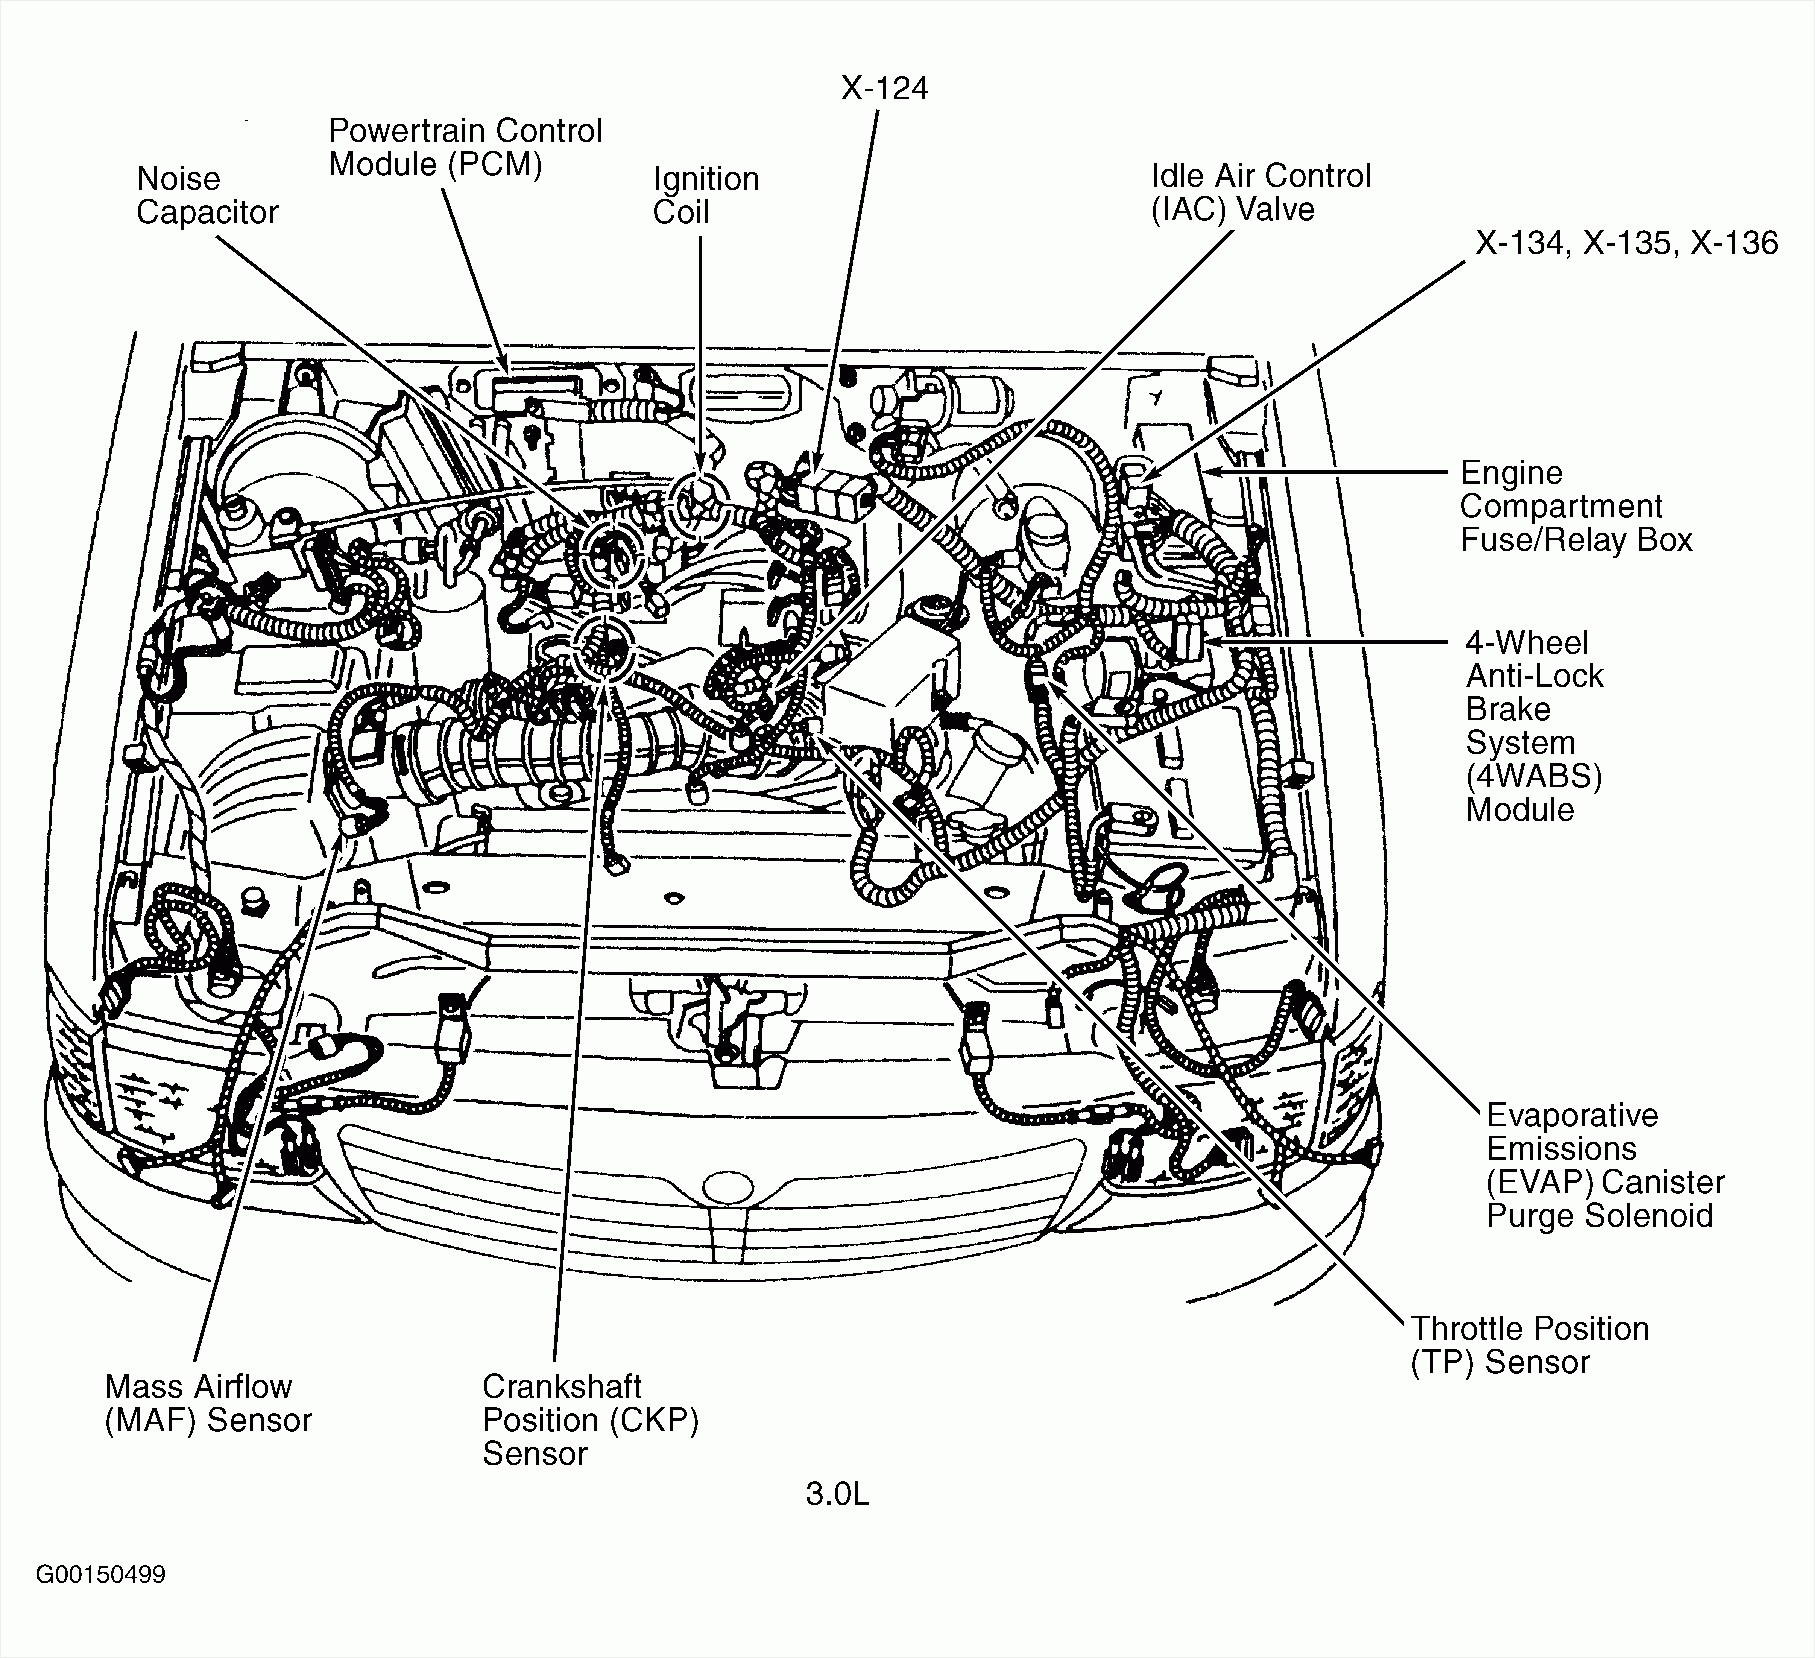 hight resolution of e36 engine bay diagram data diagram schematic bmw e32 engine bay diagram